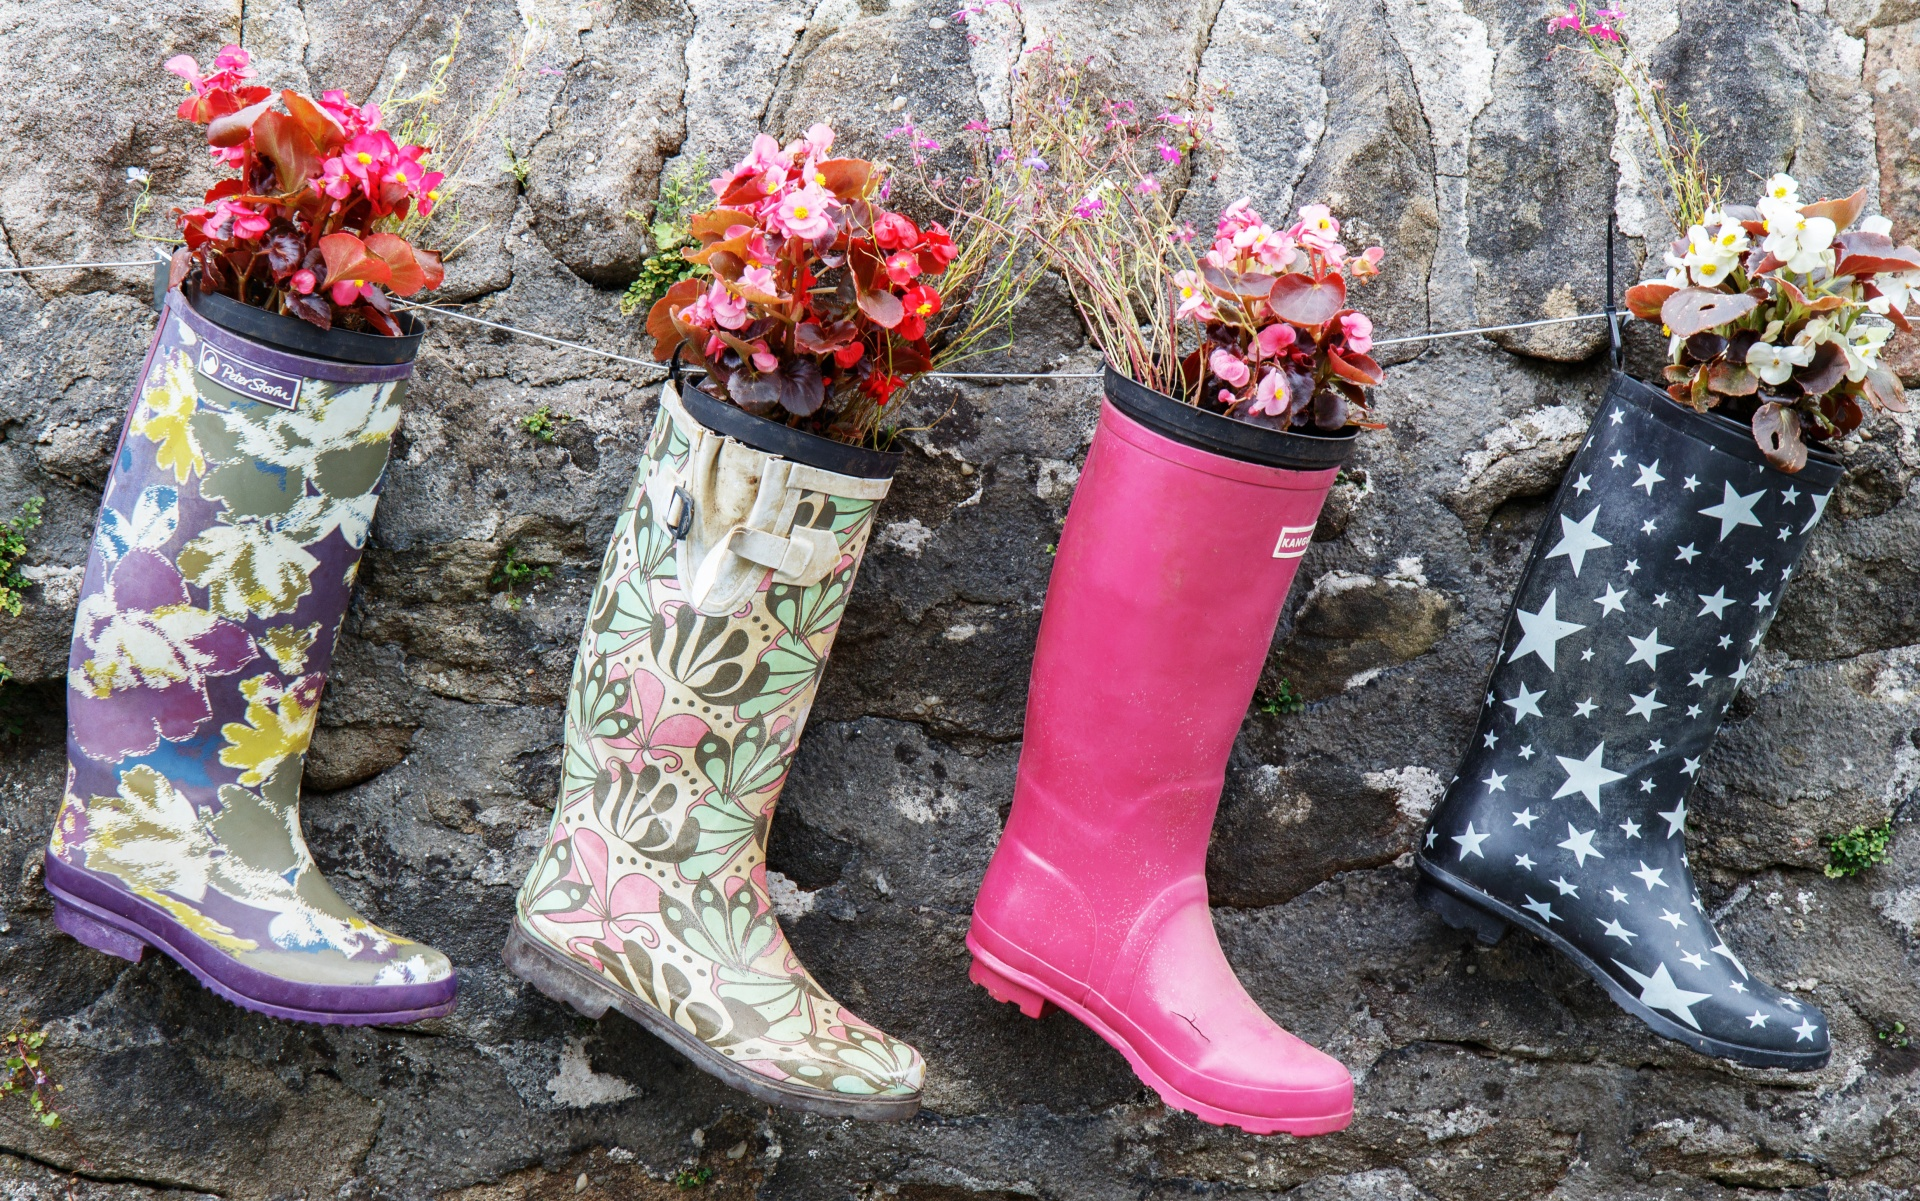 Planting in welly boots